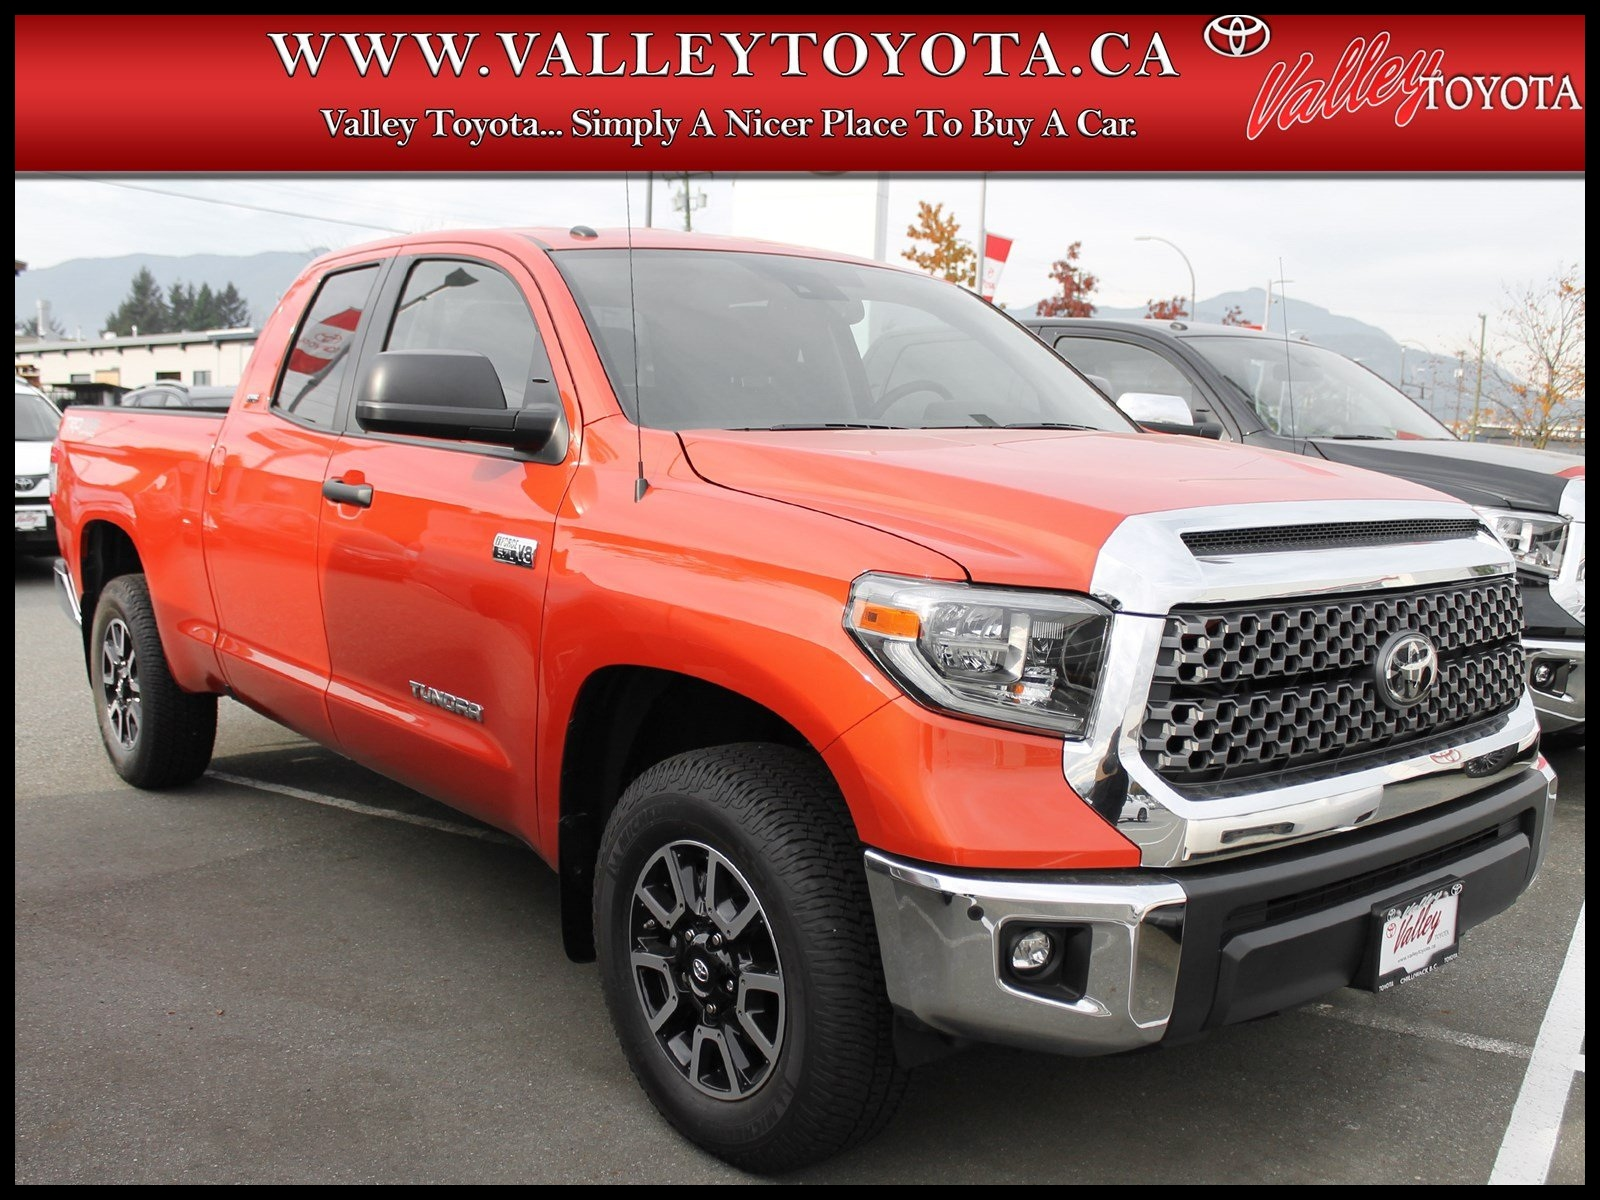 New New 2018 toyota Tundra Trd F Road Double Cab In Chilliwack Price and Review